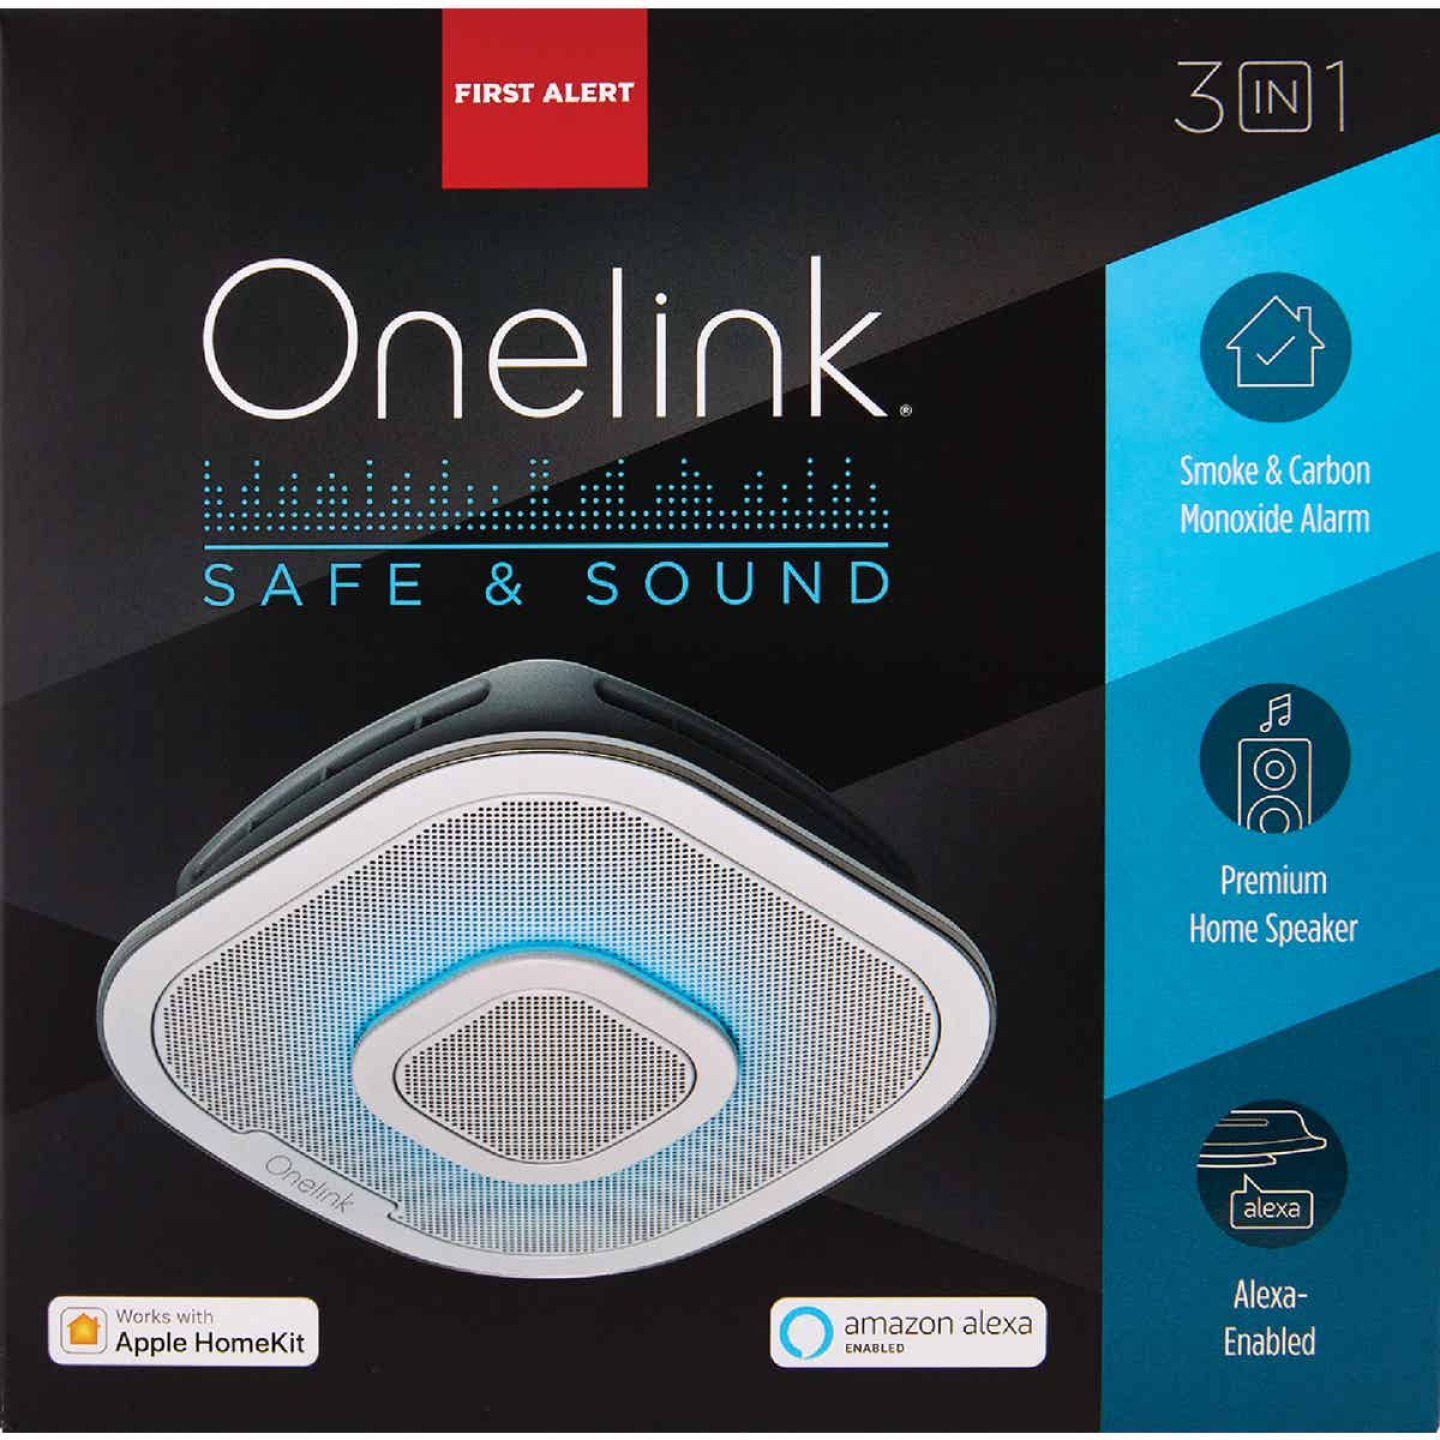 First Alert Onelink Safe & Sound 120V Photoelectric/Electrochemical Smart Carbon Monoxide and Smoke Alarm with Alexa Image 2